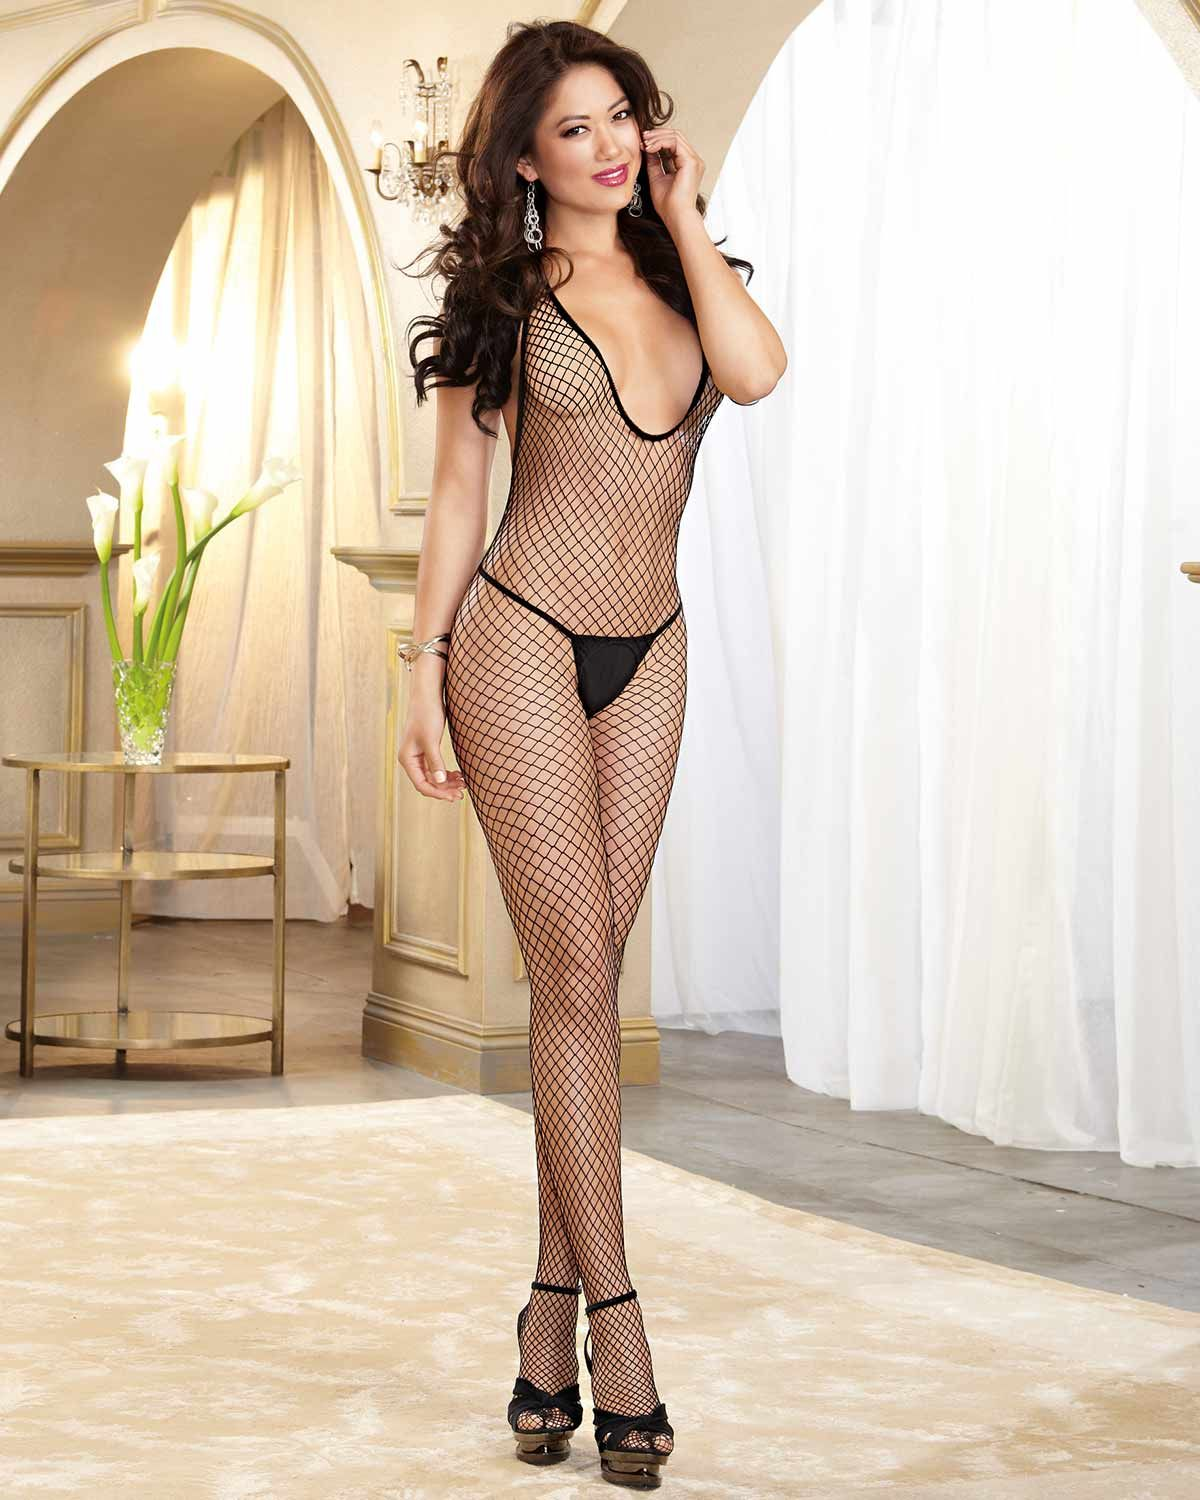 082015373 Be a bit daunting with the  Dreamgirl  Diamond  Fishnet Halter  OpenCrotch   Bodystocking